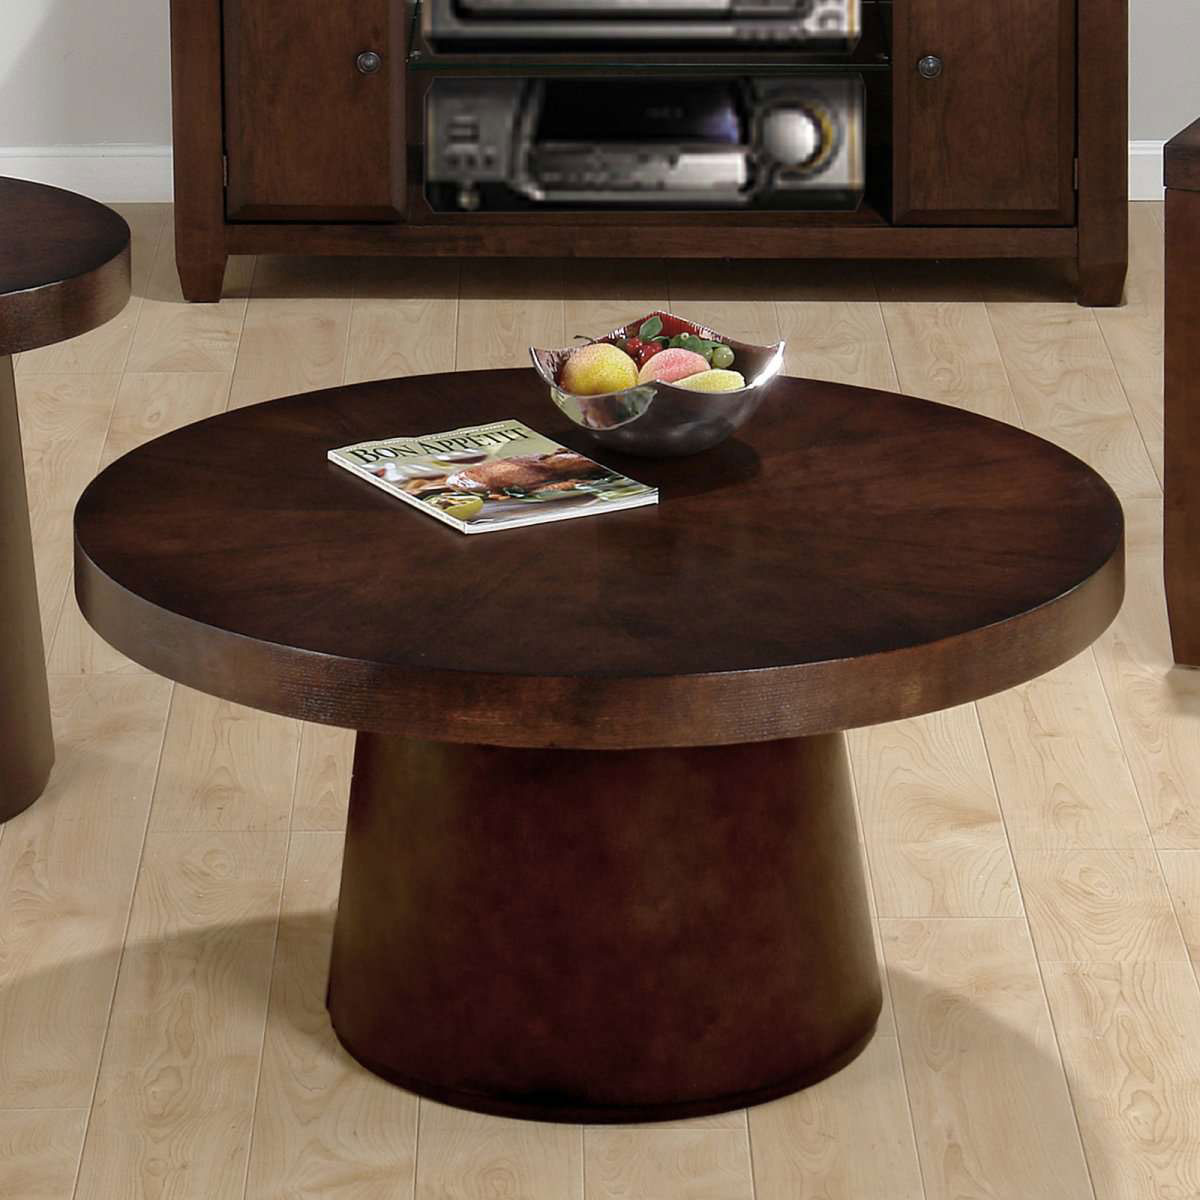 futuristic-kitchen-design-contemporary-ideas-living-room-furniture-black-wood-round-coffee-table-small-round-coffee-table (Image 4 of 18)